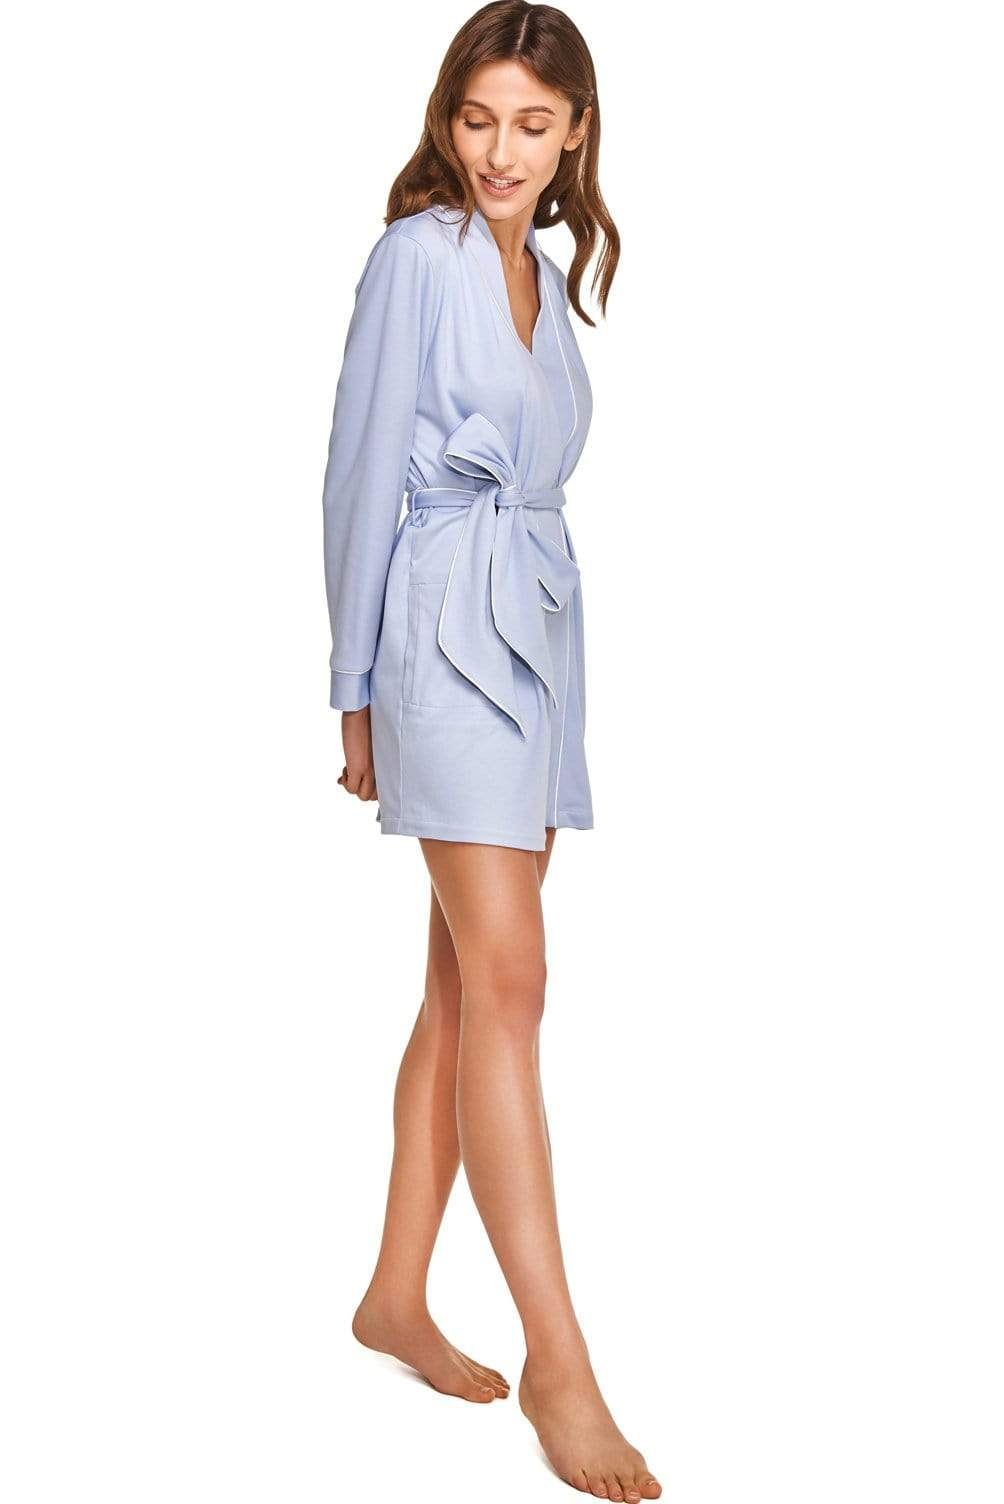 Slow Nature® Essentials Sleep & Loungewear ROBE in Organic Cotton. sustainable fashion ethical fashion